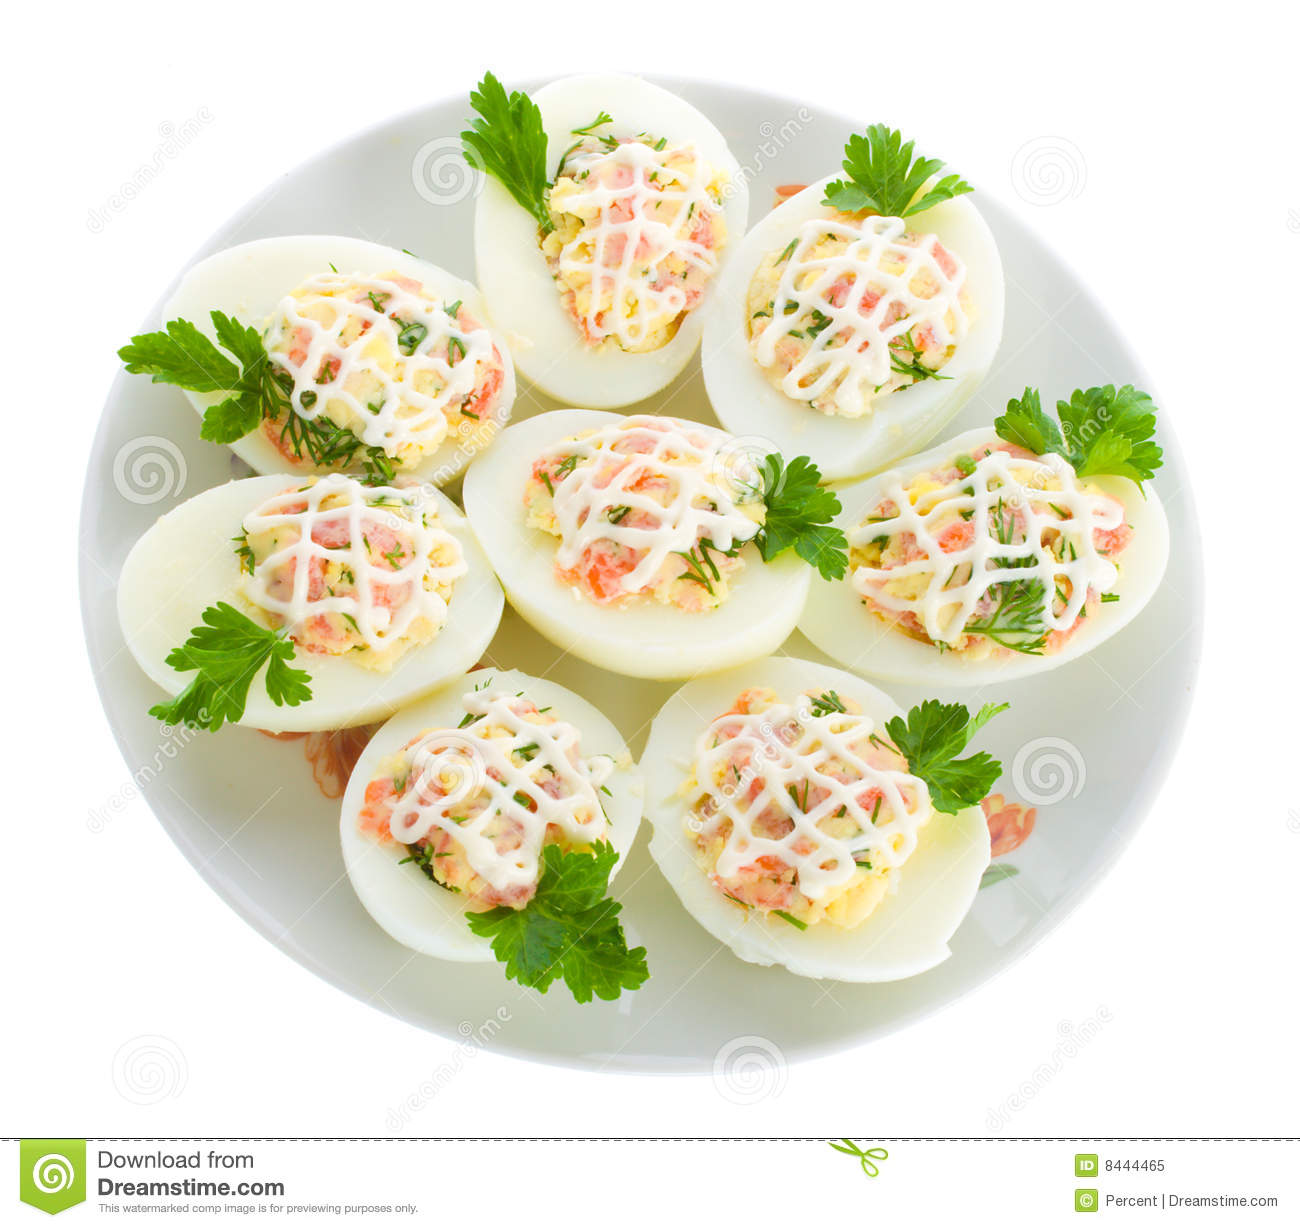 Stuffed Eggs With Red Fish Royalty Free Stock Photo - Image: 8444465